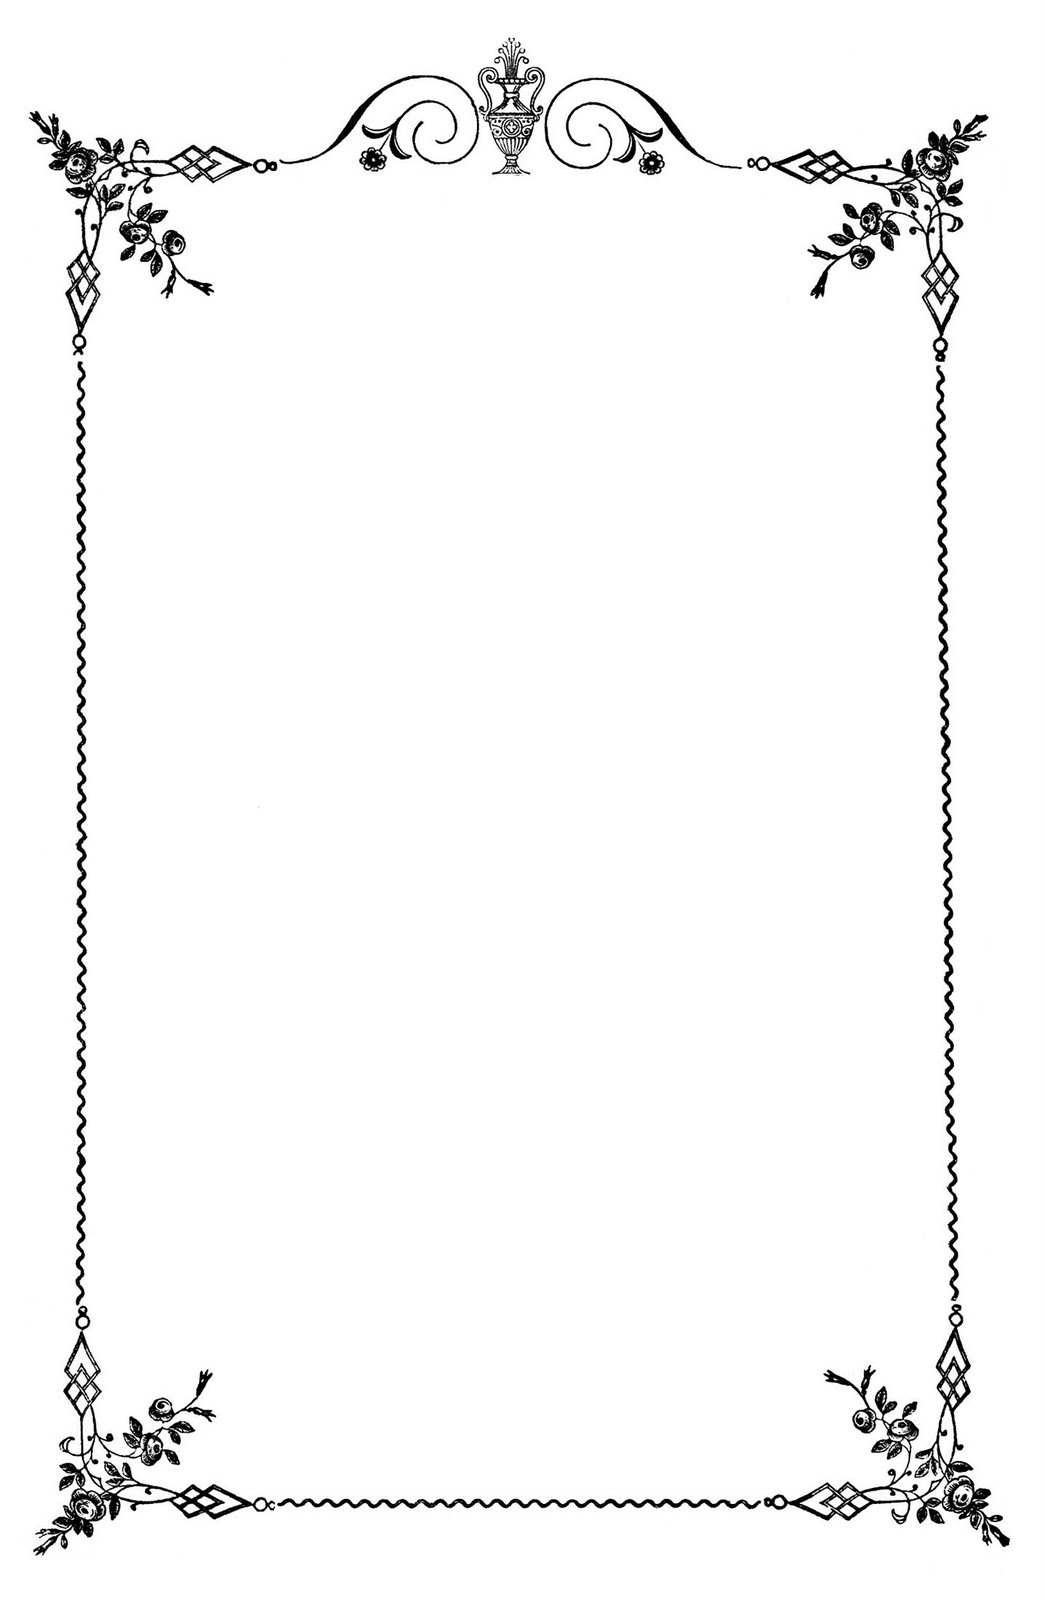 15 Black Wedding Borders Free Cliparts That You Can Download To You